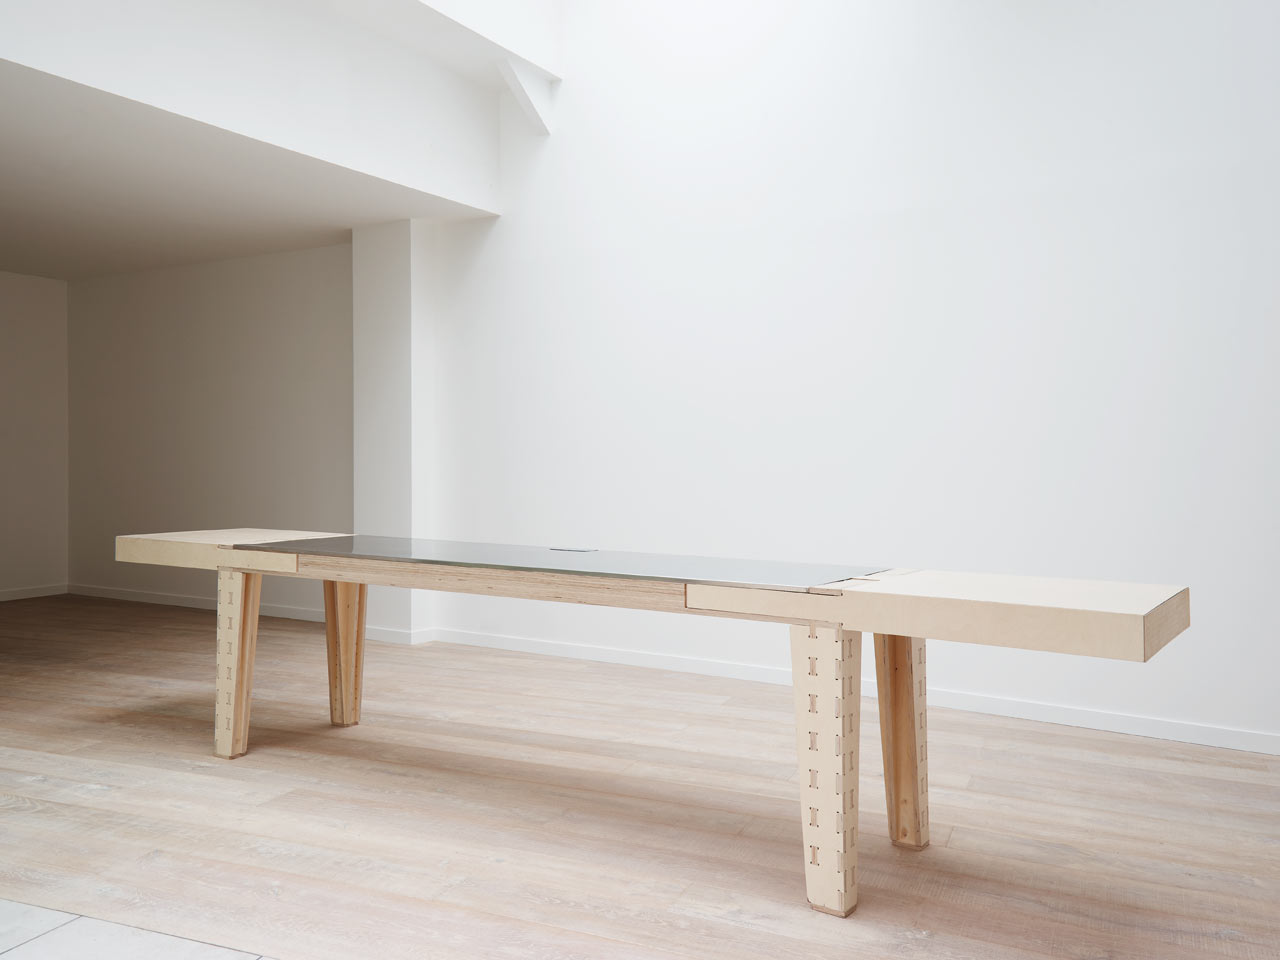 work-and-turn-multipurpose-table-with-a-reversible-top-1